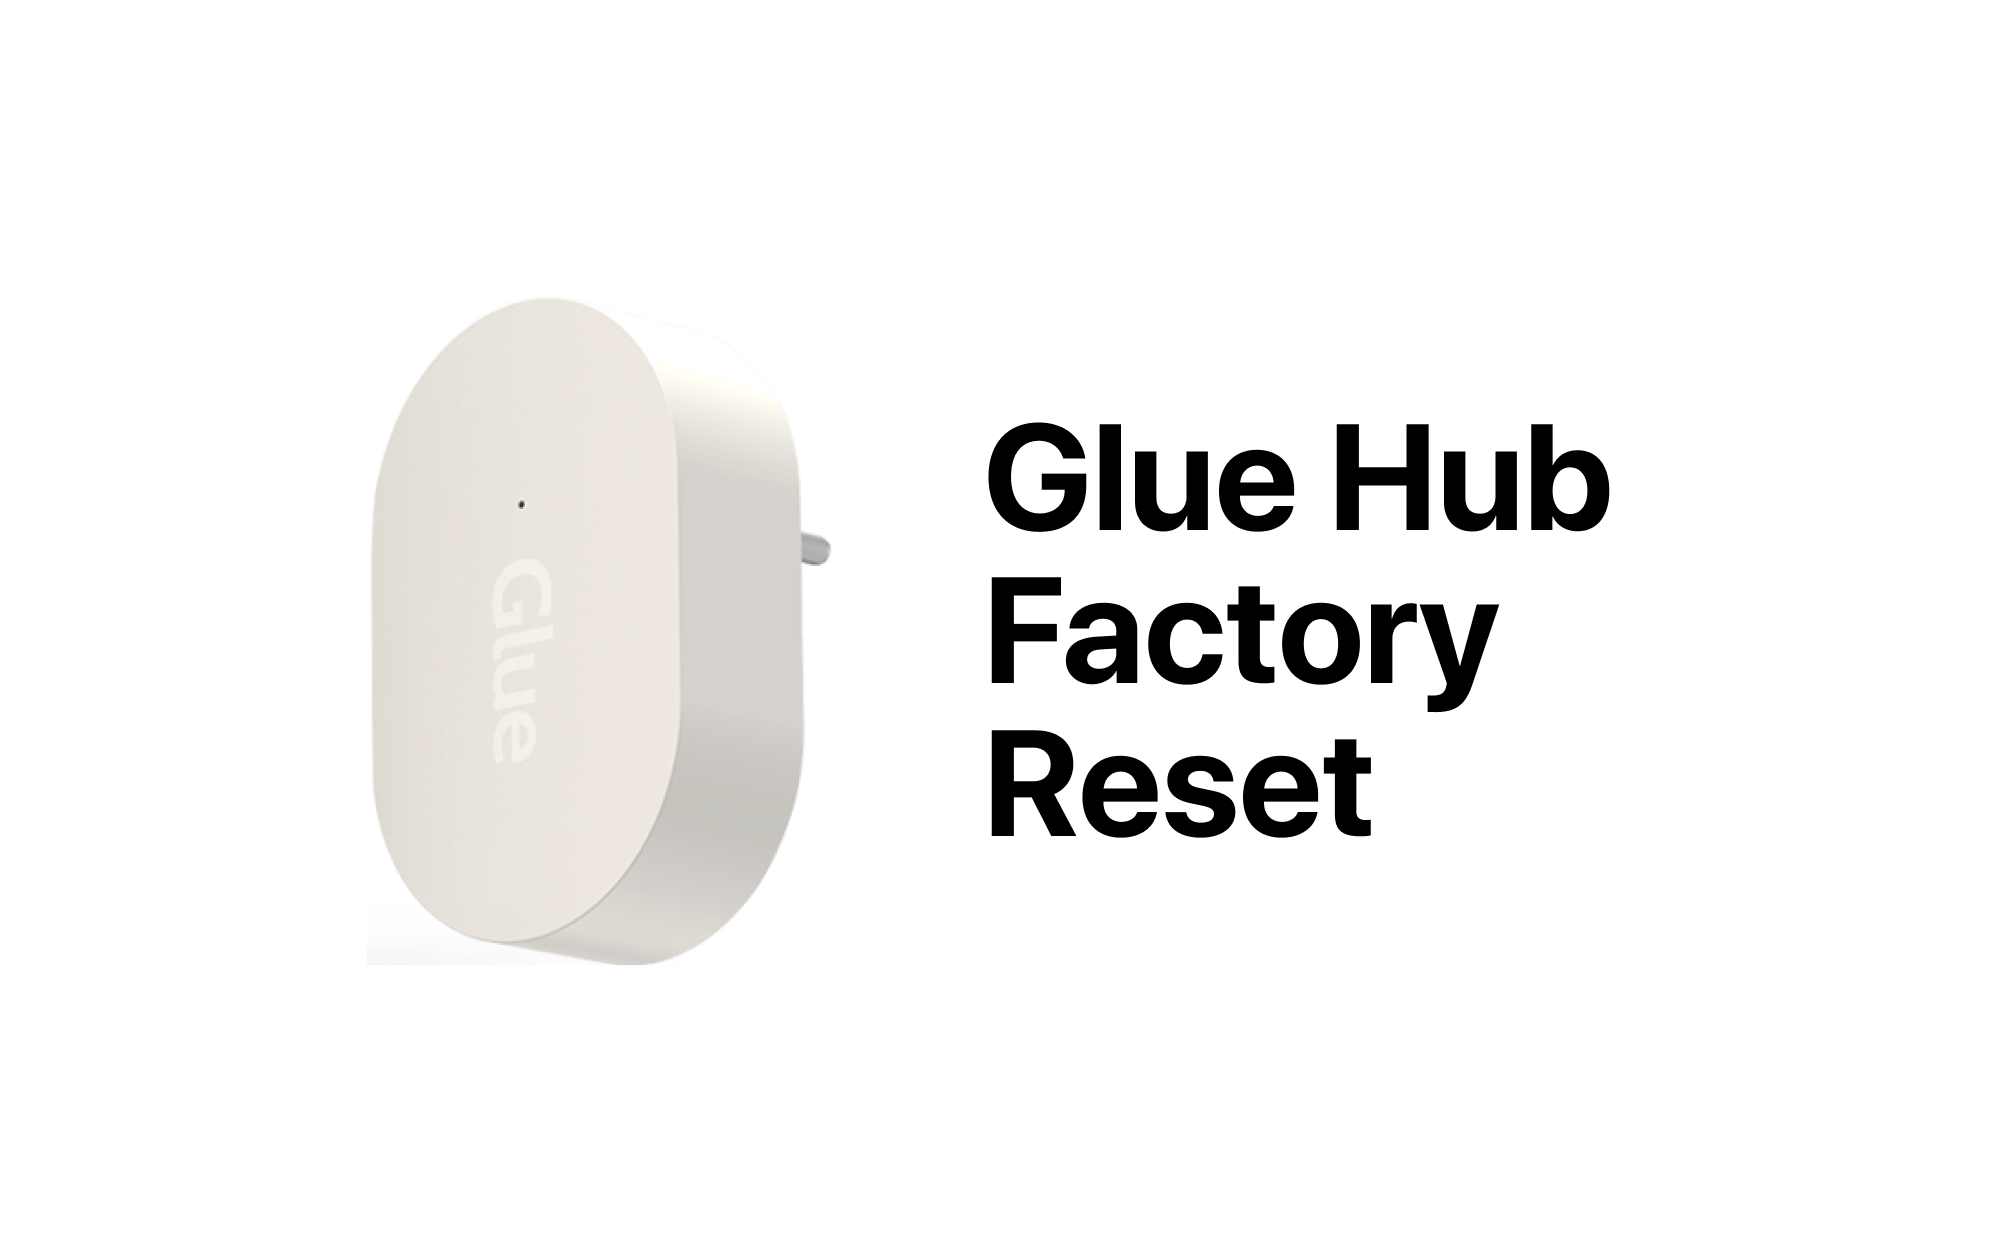 How to reset your Glue Hub